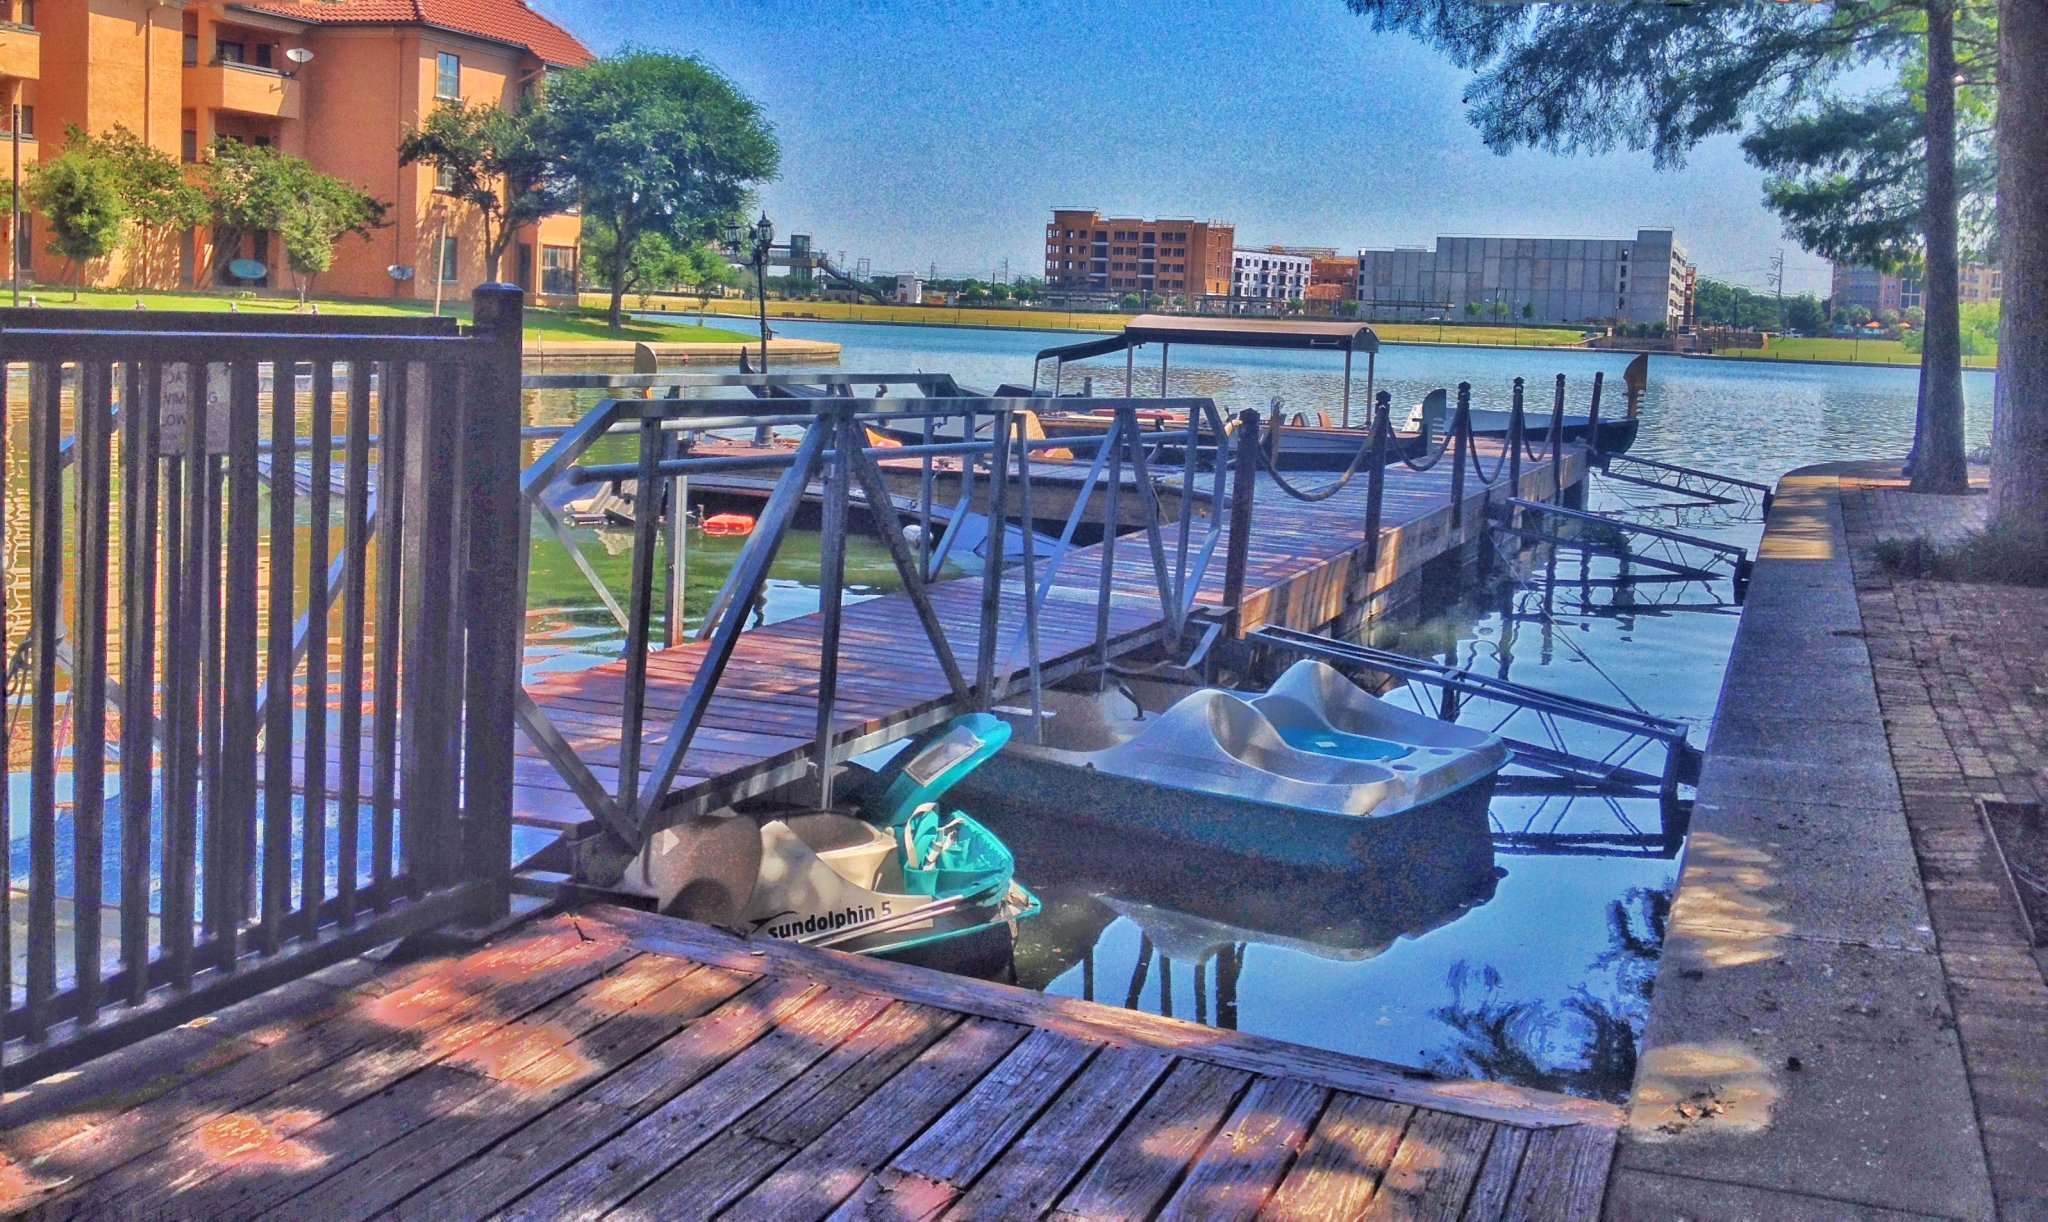 Las Colinas - docks and overturned boats